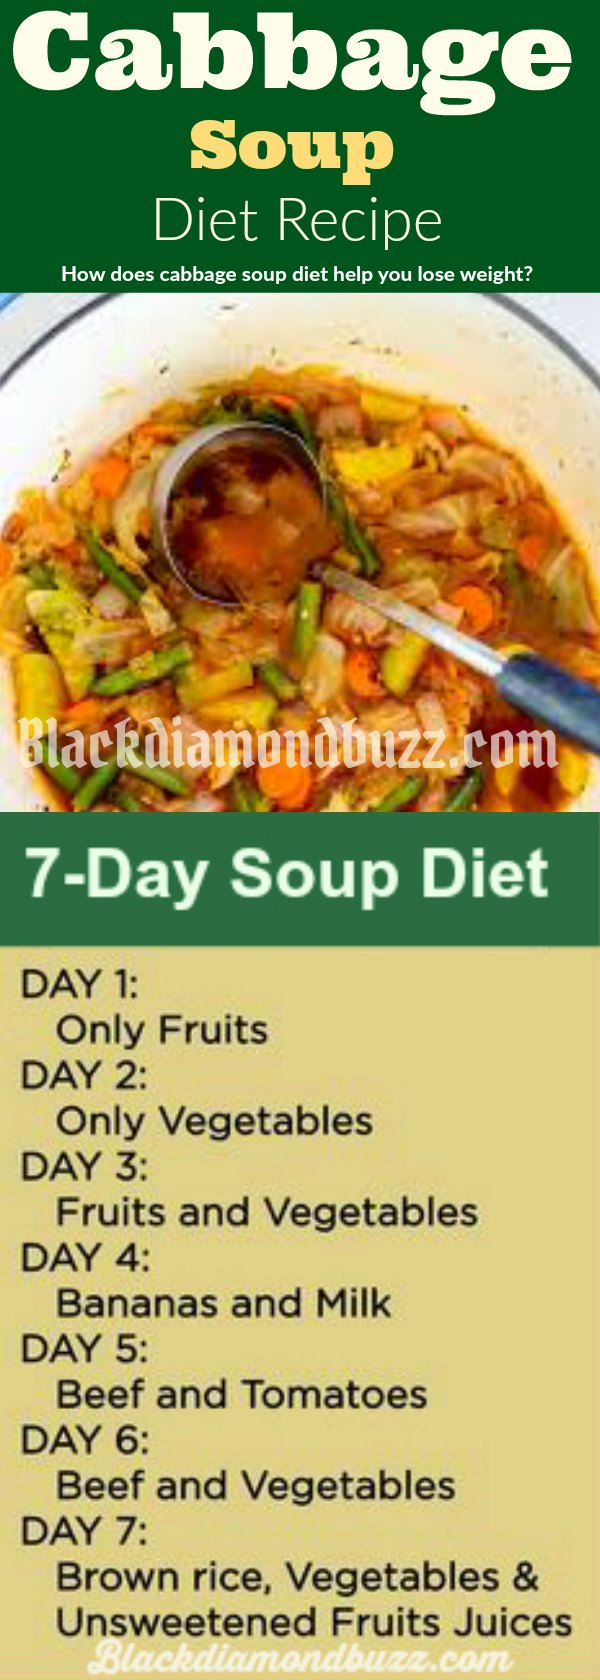 Best Cabbage Soup Diet Recipe For Weight Loss Lose 10 Lbs In 7 Days